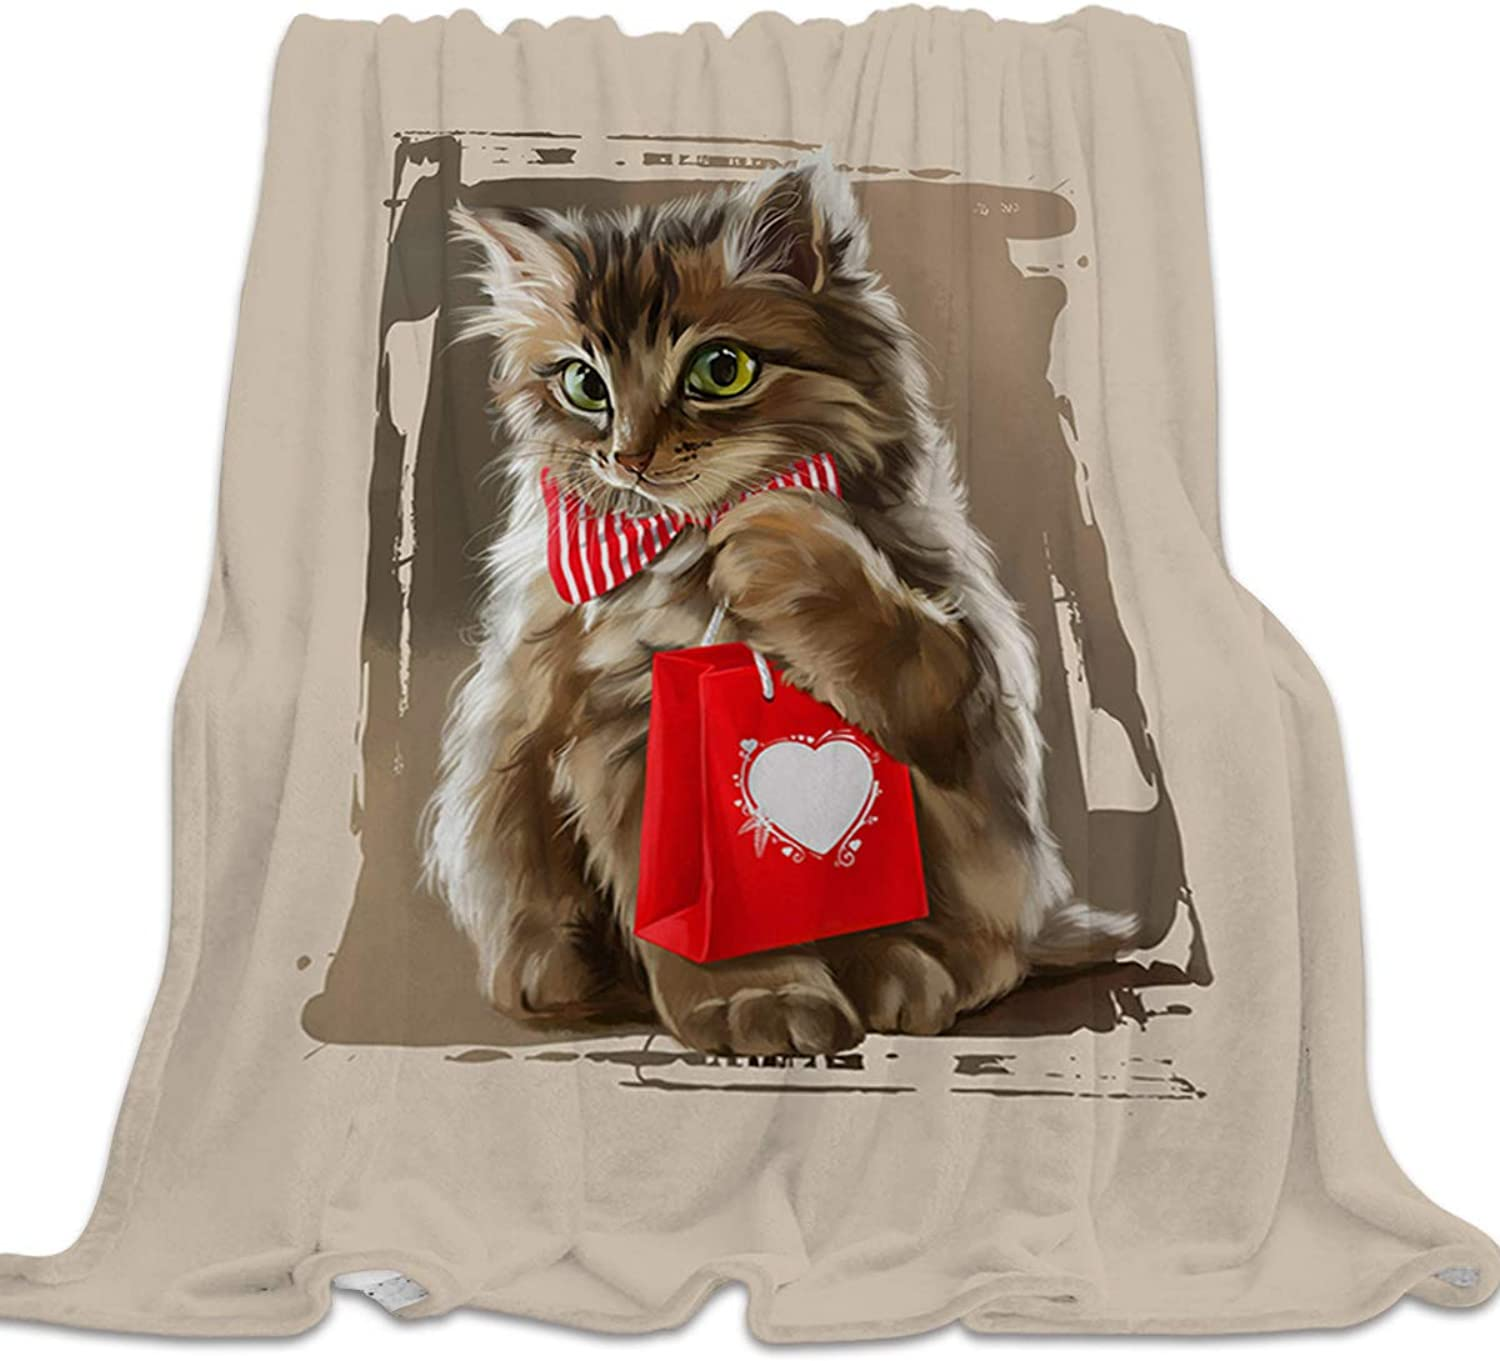 YEHO Art Gallery Soft Flannel Fleece Bed Blanket Throw-Blankets for Girls Boys,Cute 3D Cat Holding Gift Animal Pattern,Lightweight Warm Blankets for Bedroom Living Room Sofa Couch,39x49inch